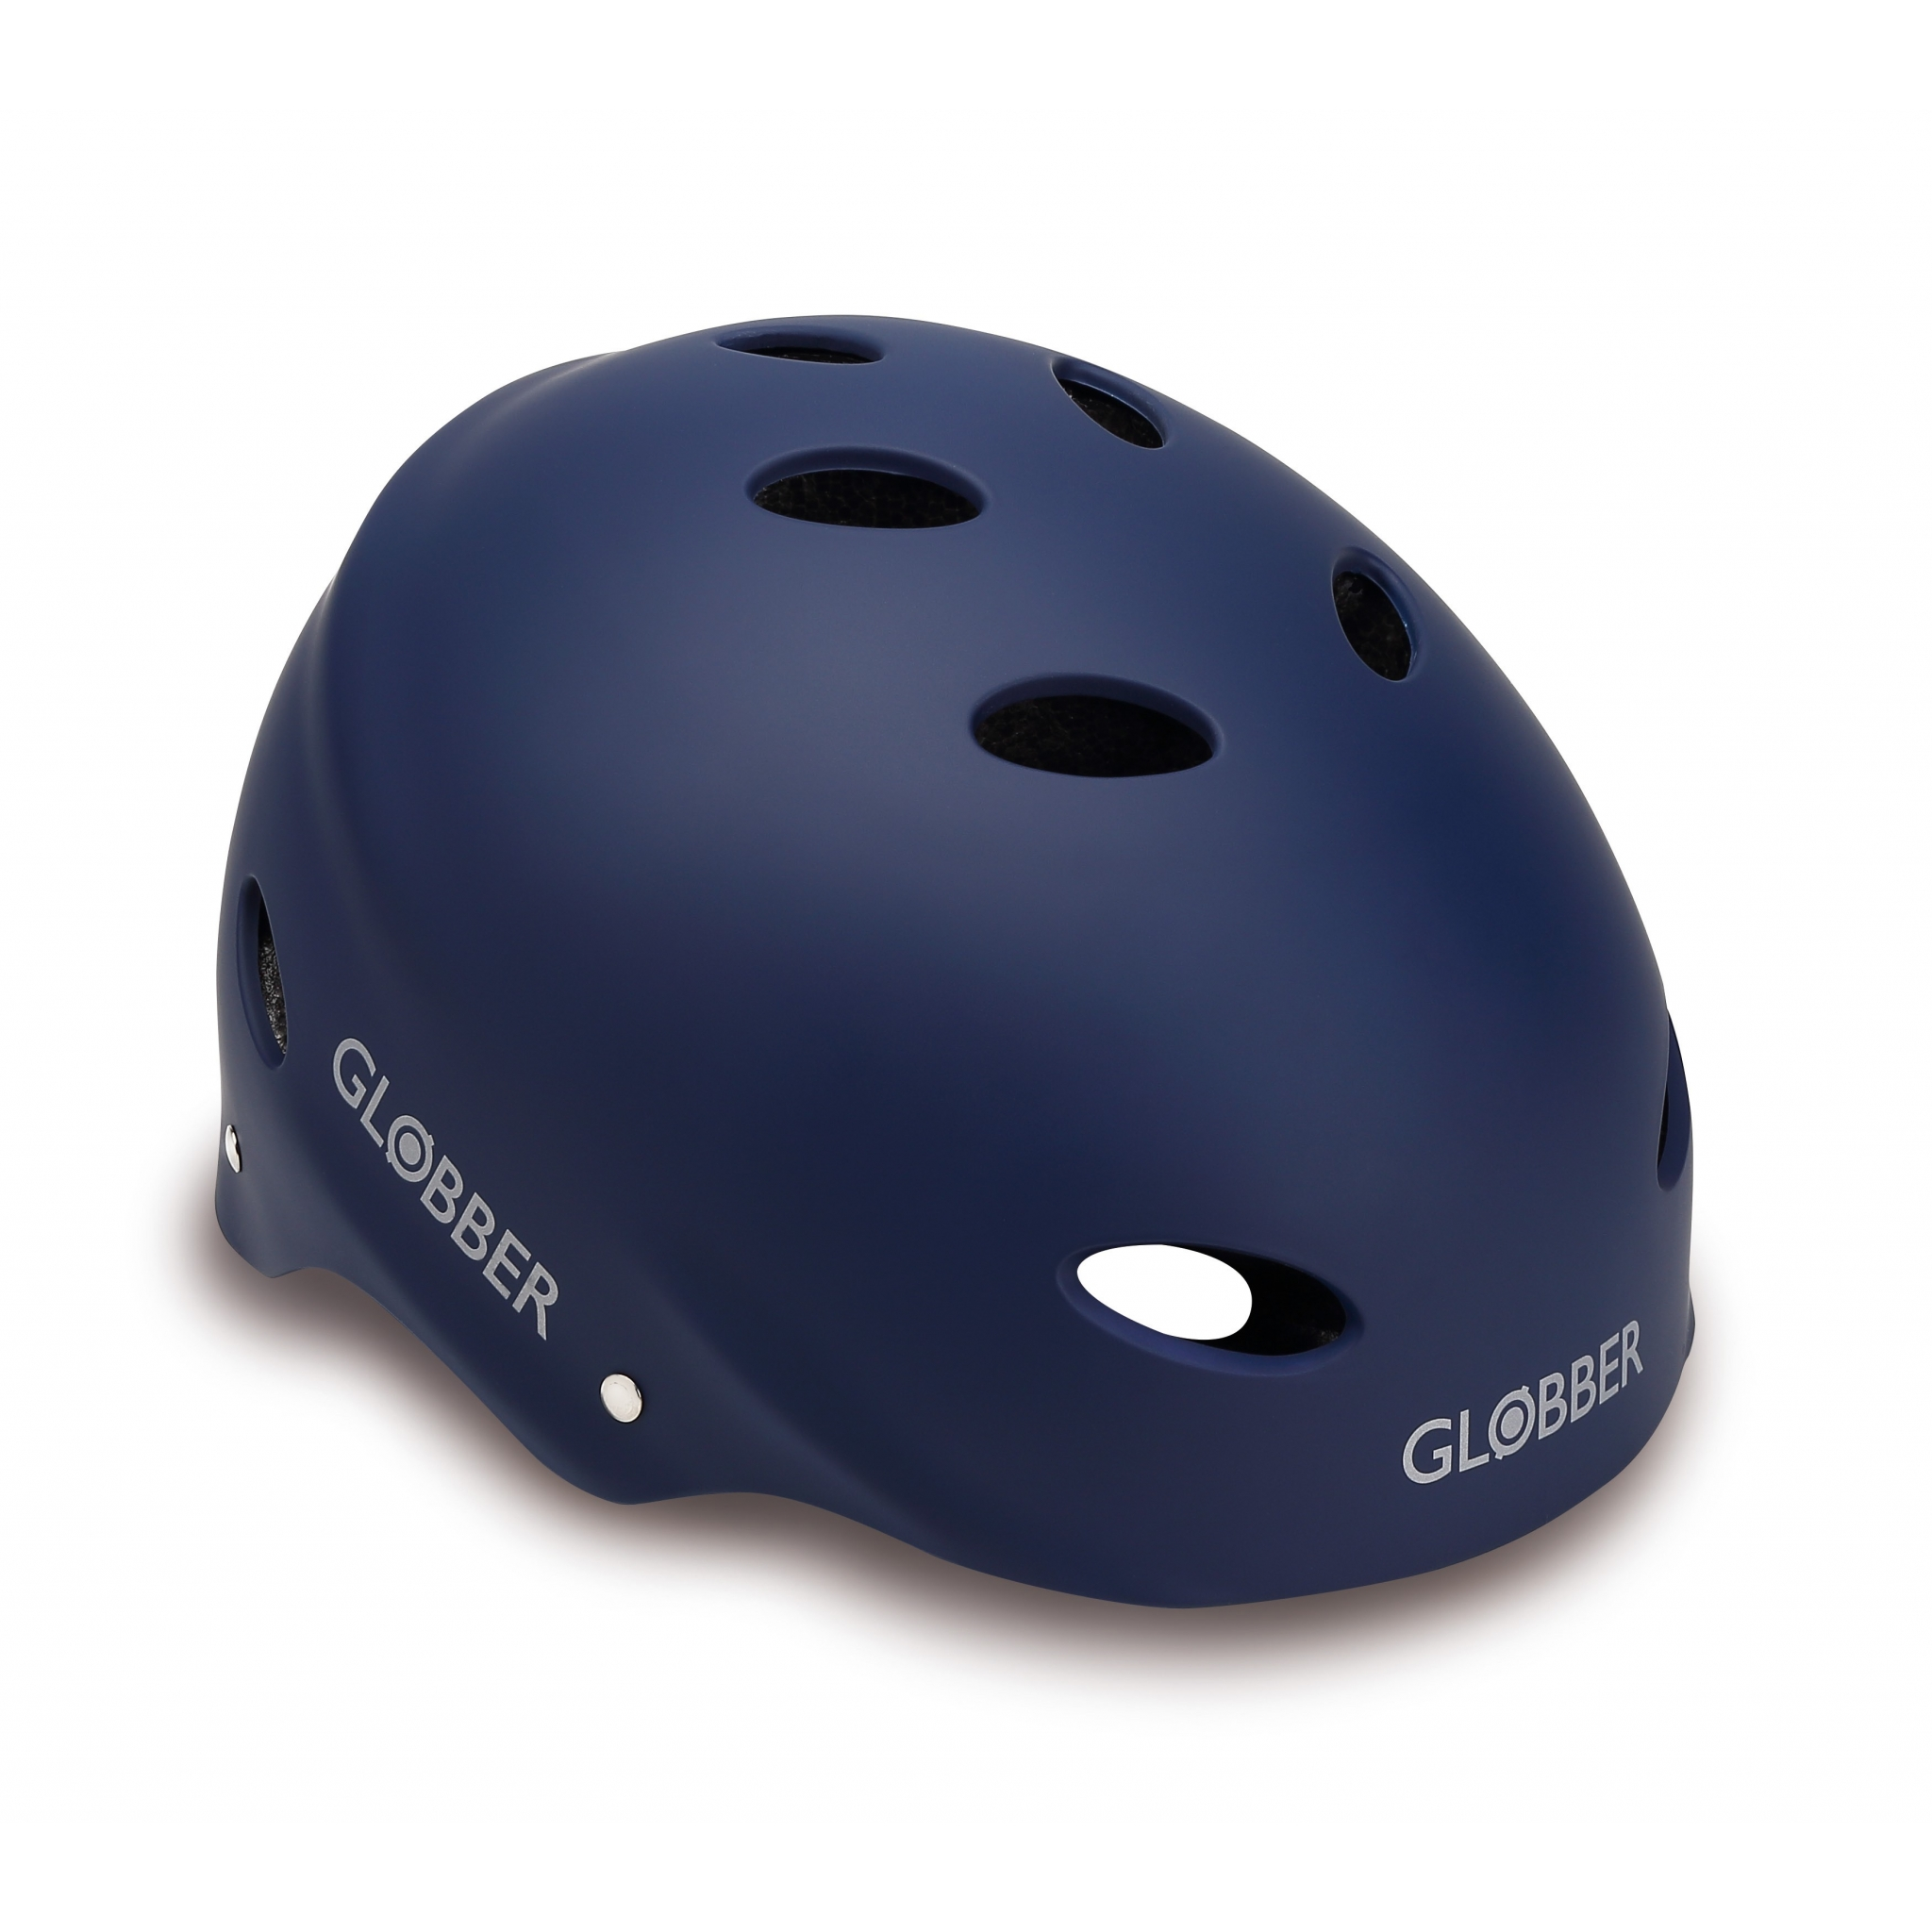 scooter helmet for adults - Globber 0